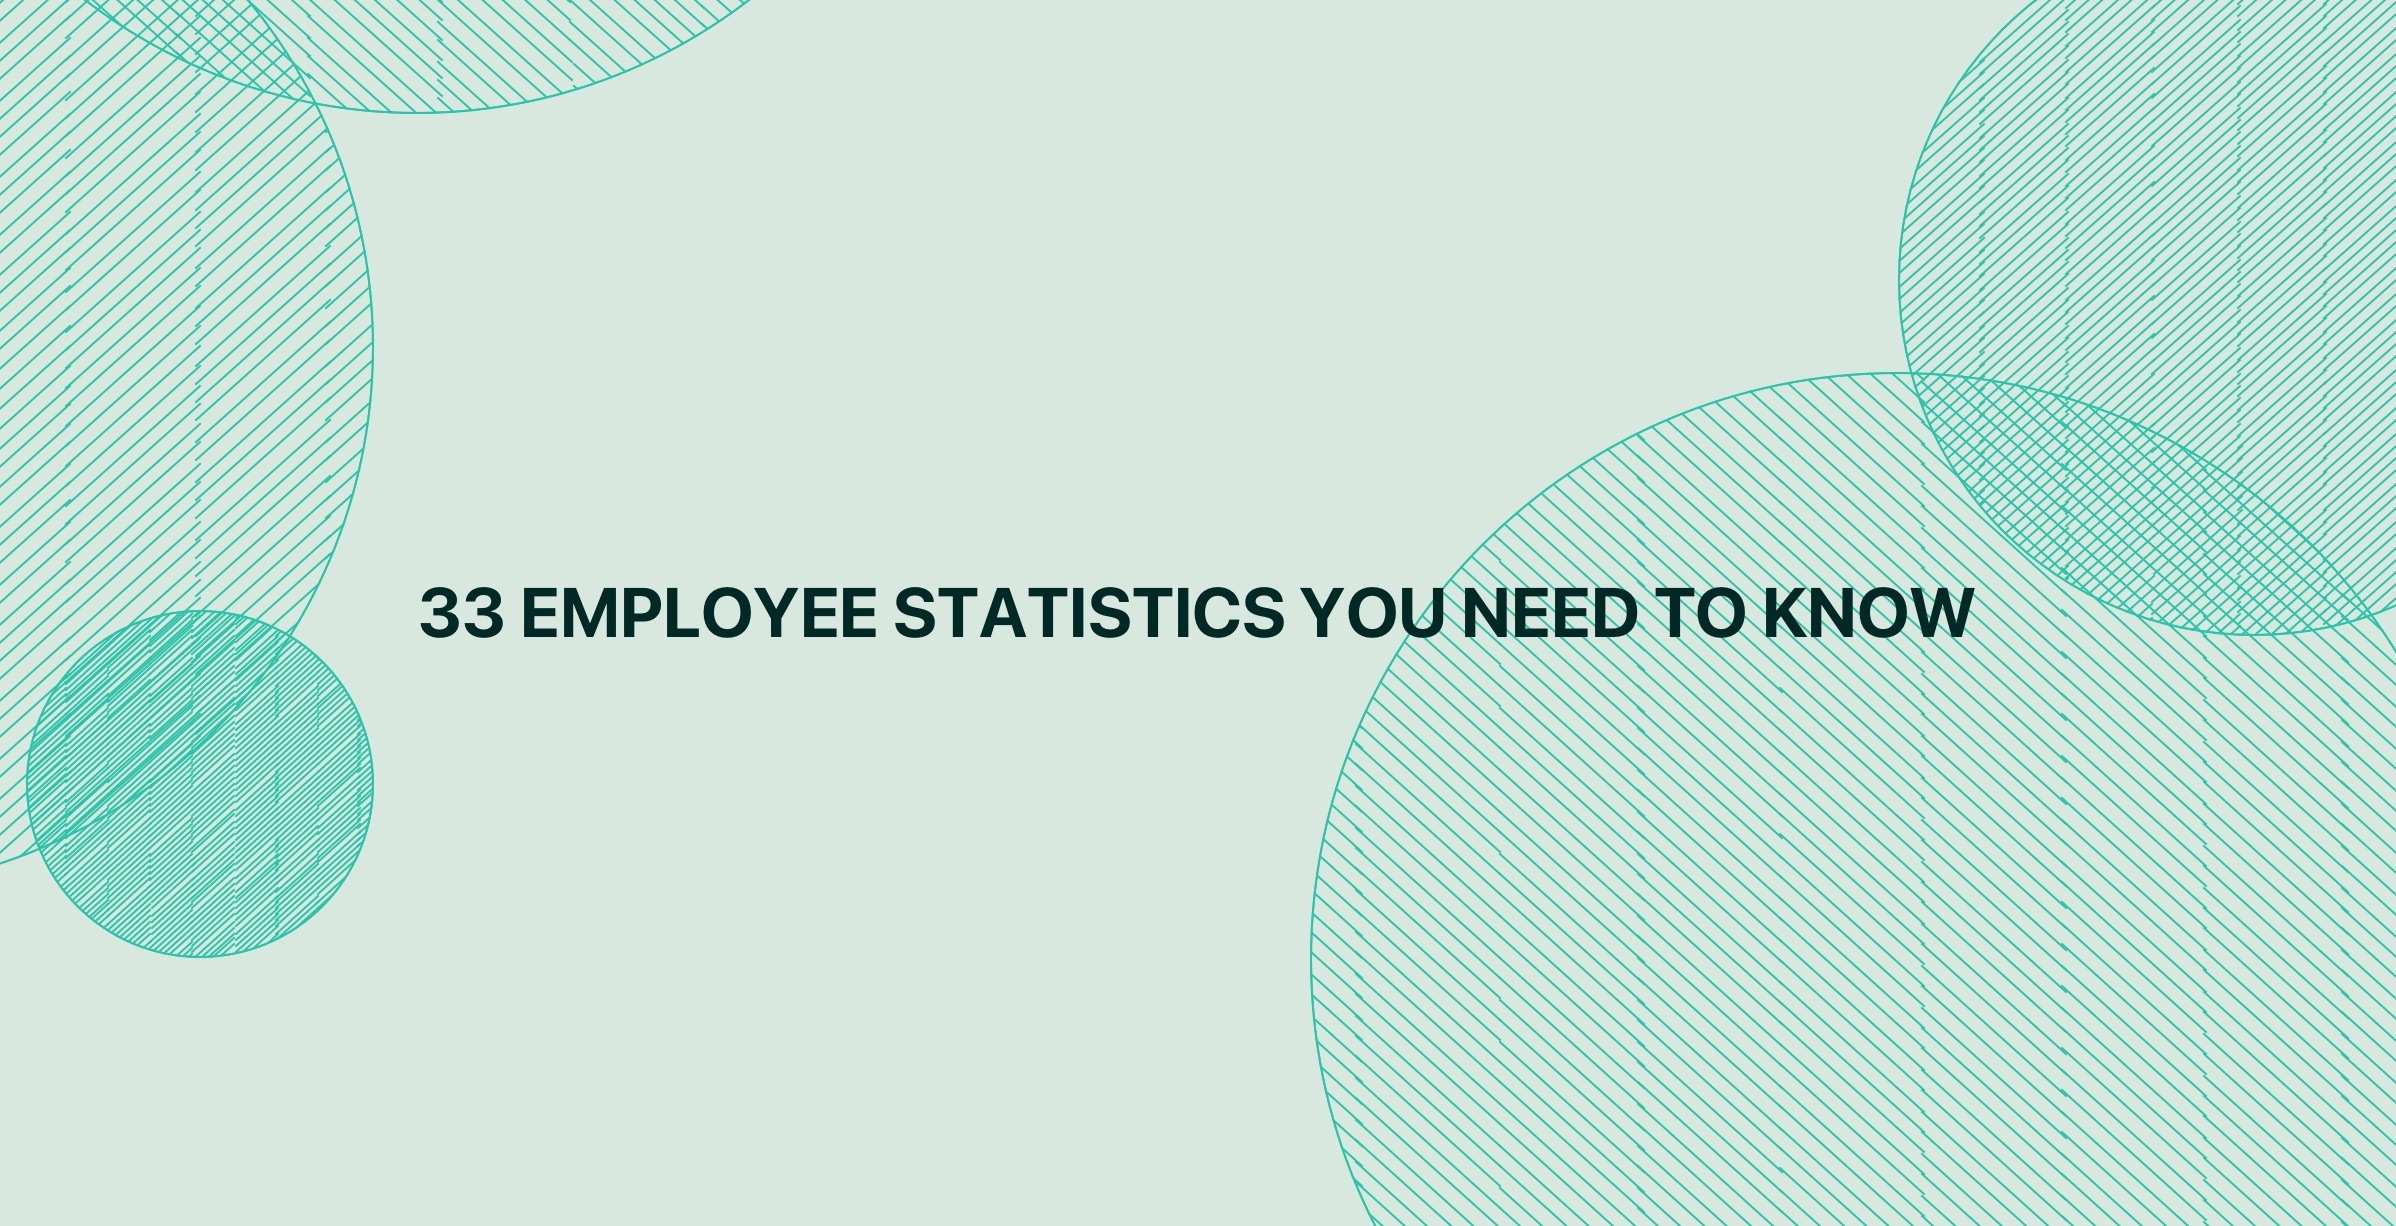 33 employee statistics you need to know in 2021